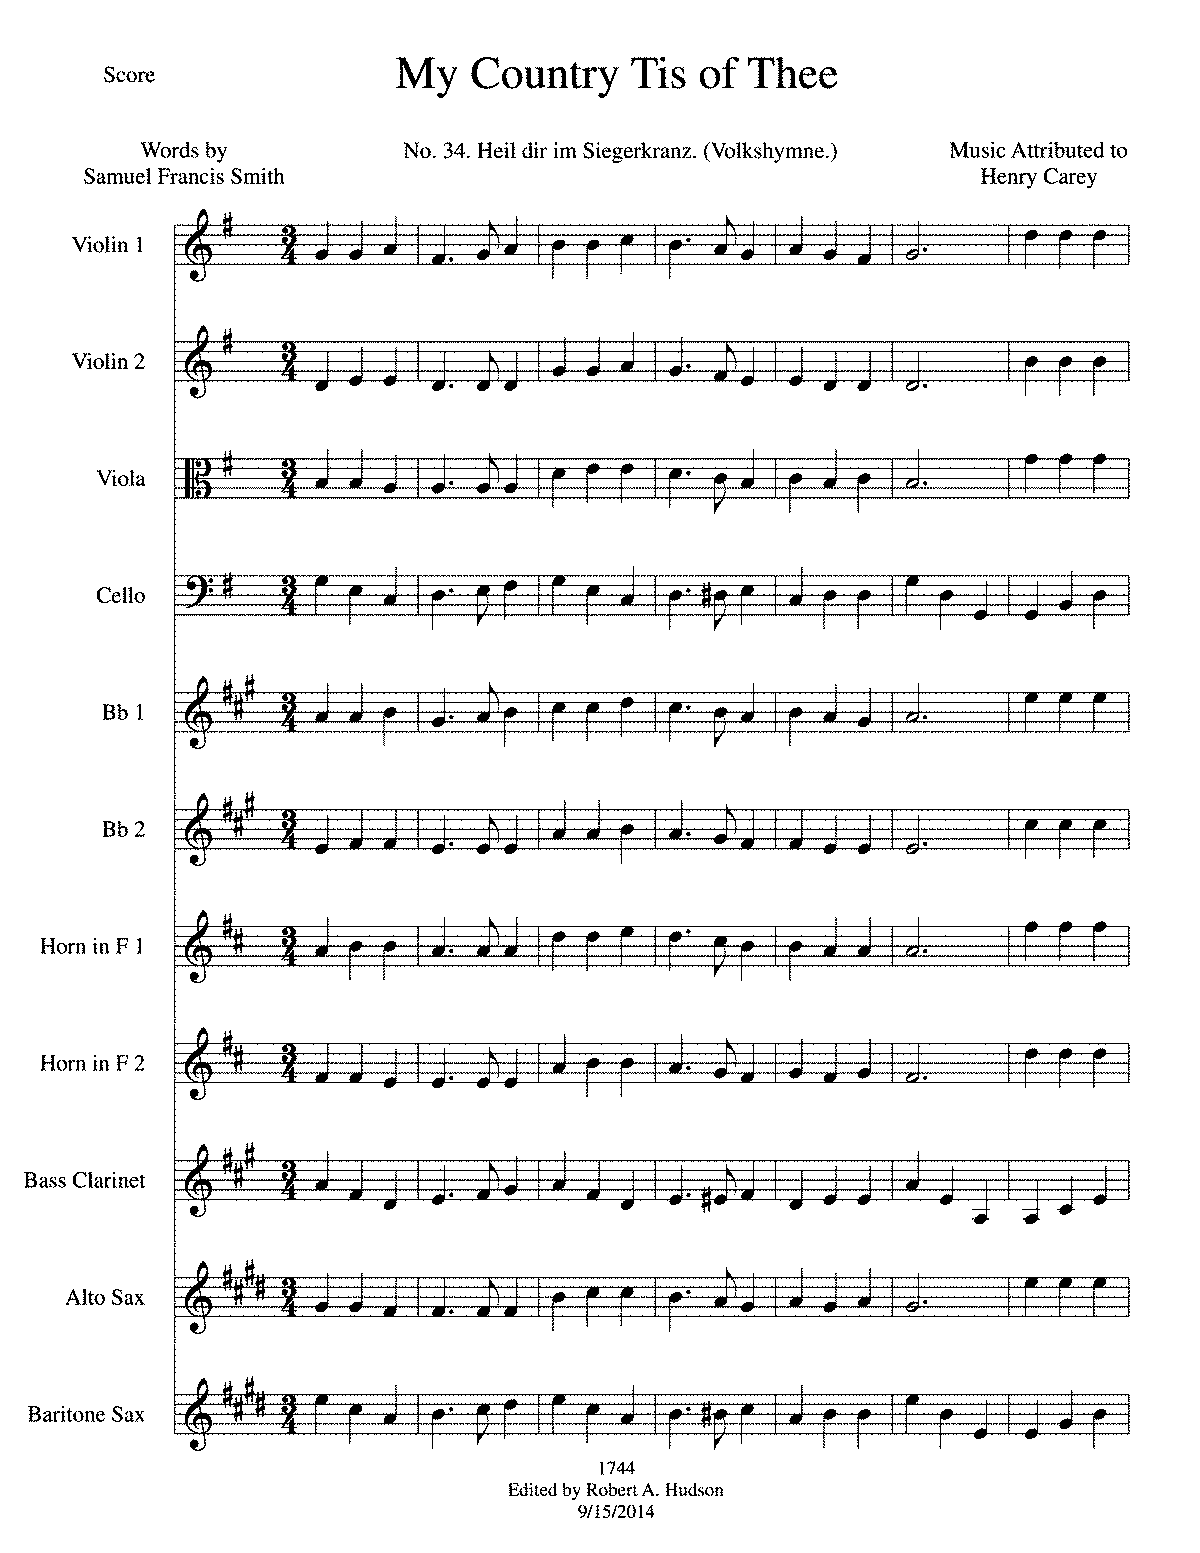 PMLP26473-My Country Tis of Thee Orch - Complete for Instruments.pdf